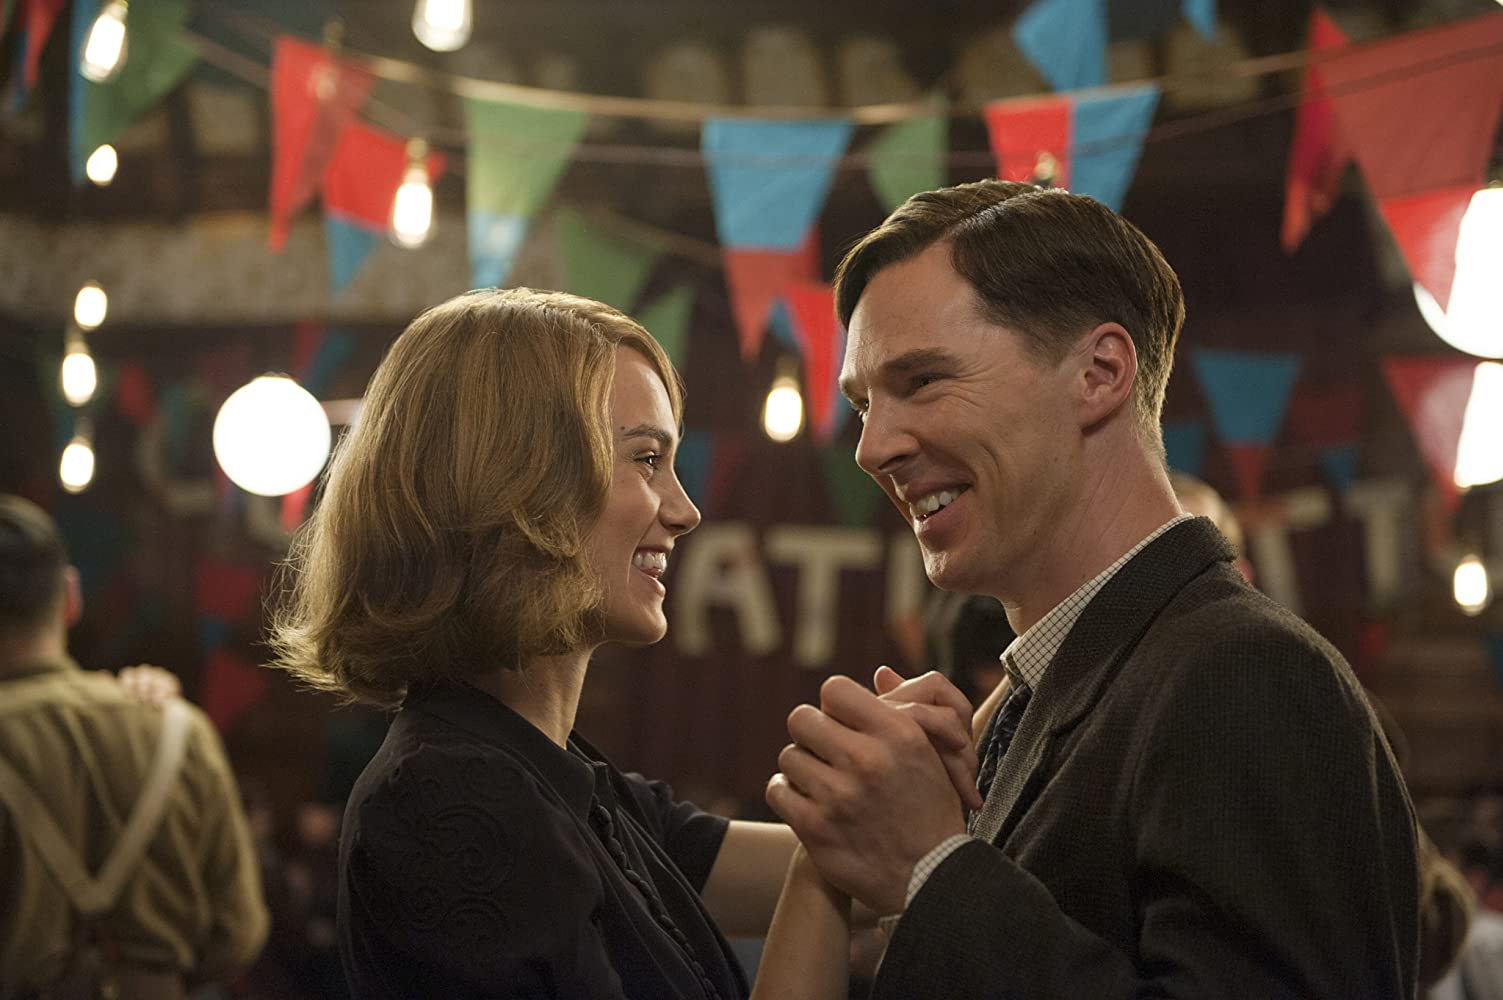 Keira Knightley and Benedict Cumberbatch in The Imitation Game (2014)